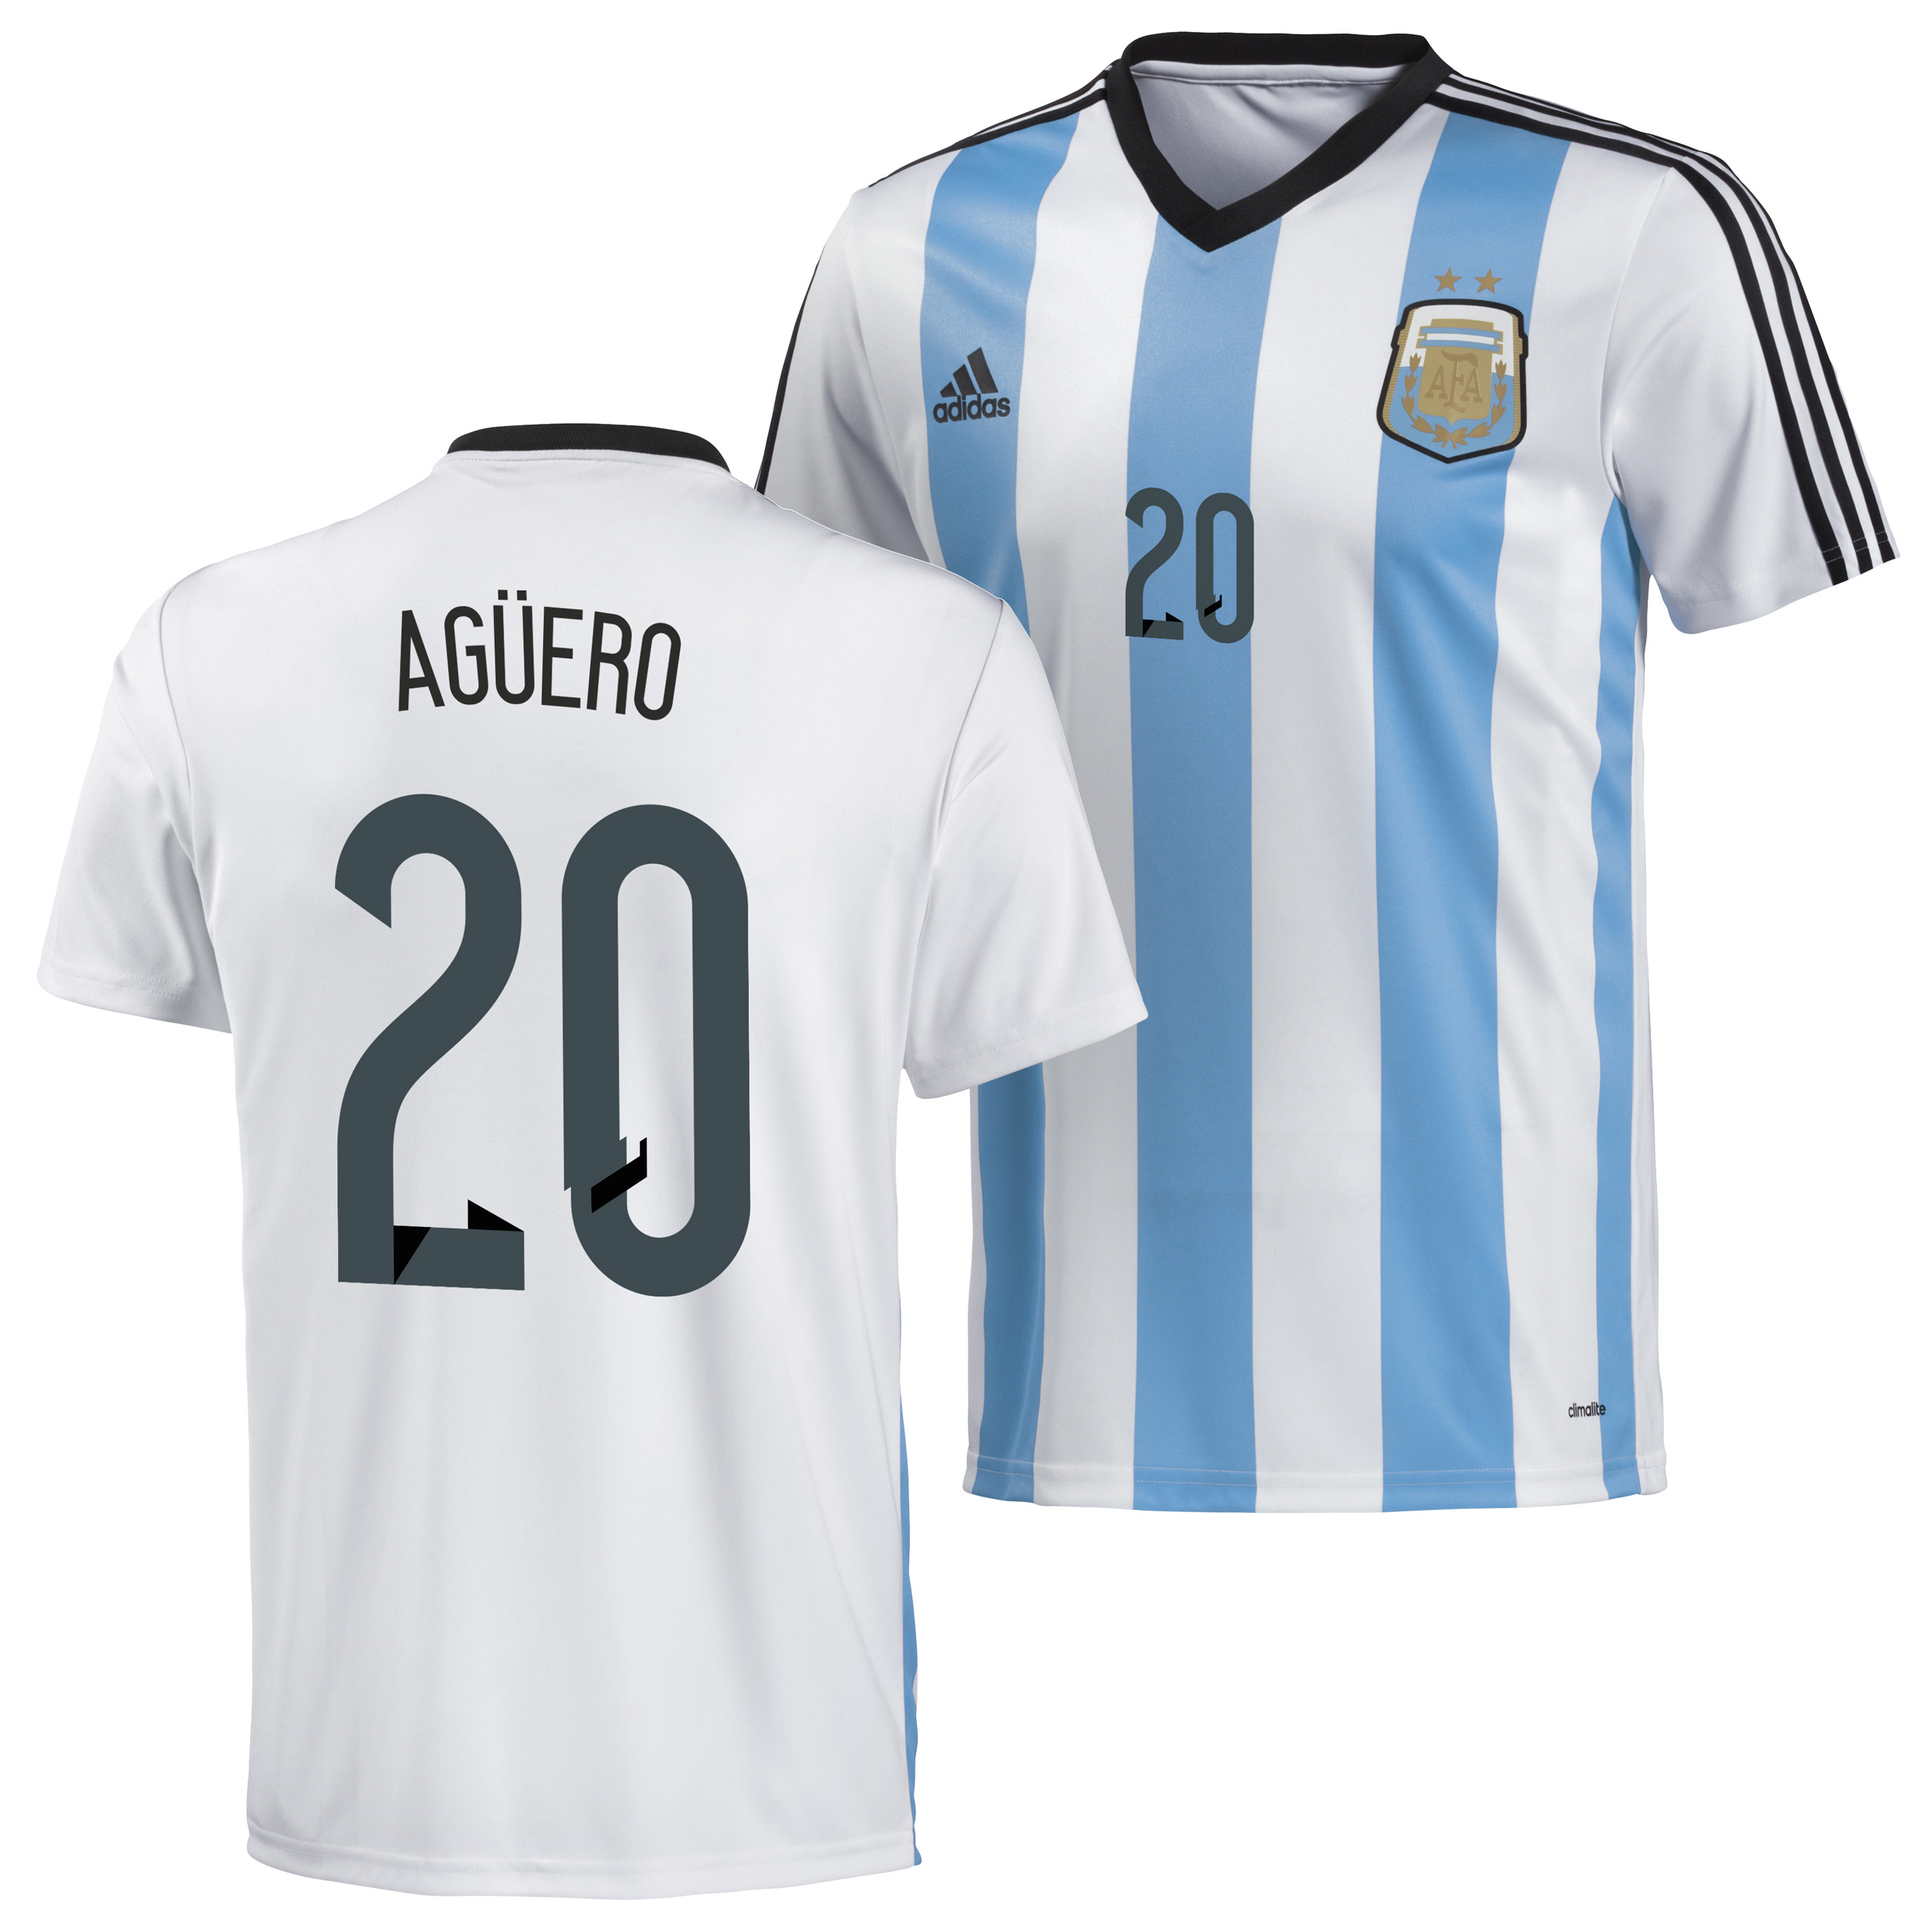 Argentina Home Replica T-Shirt 2013/14 with Aguero 16 printing